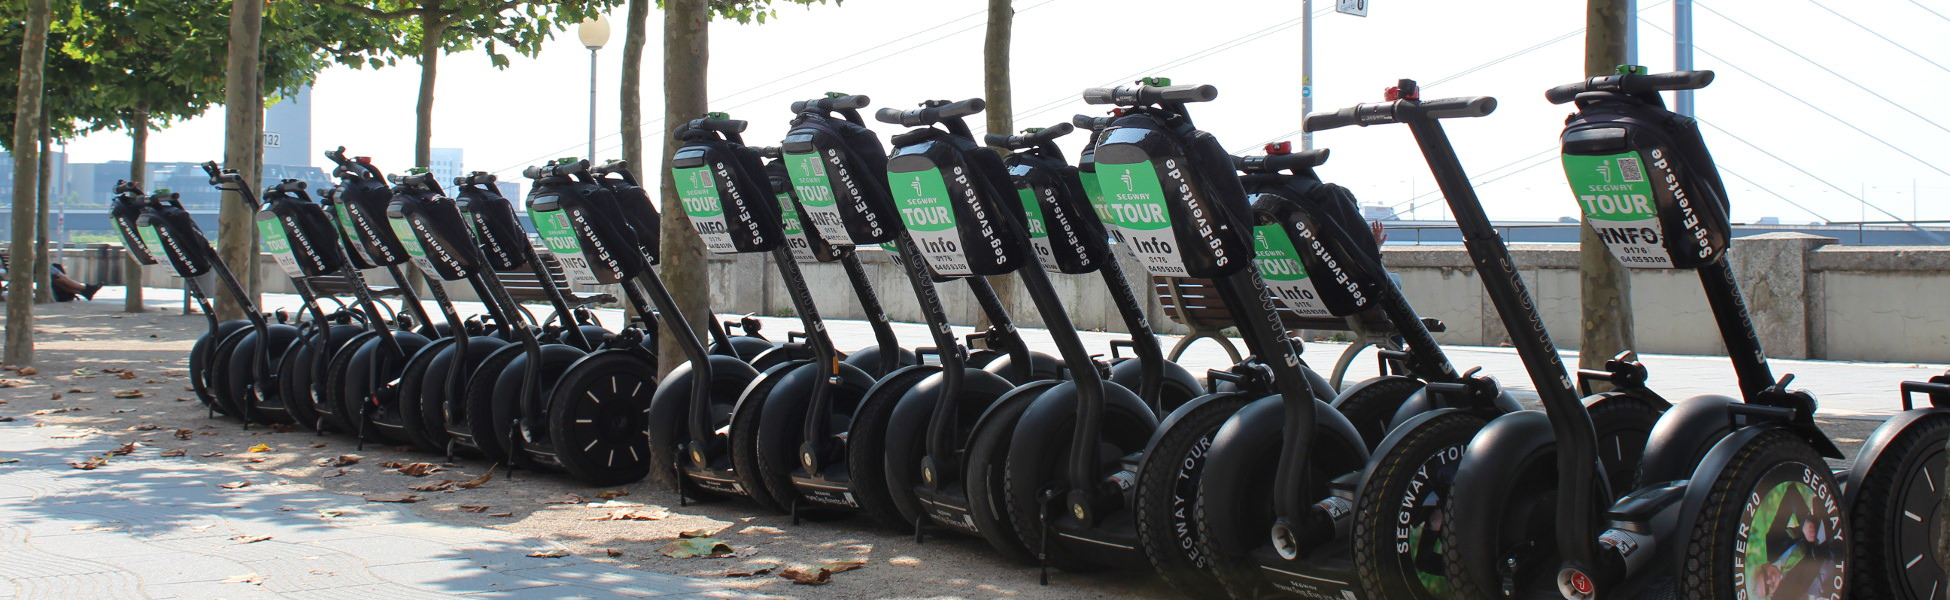 Segway Toure in NRW